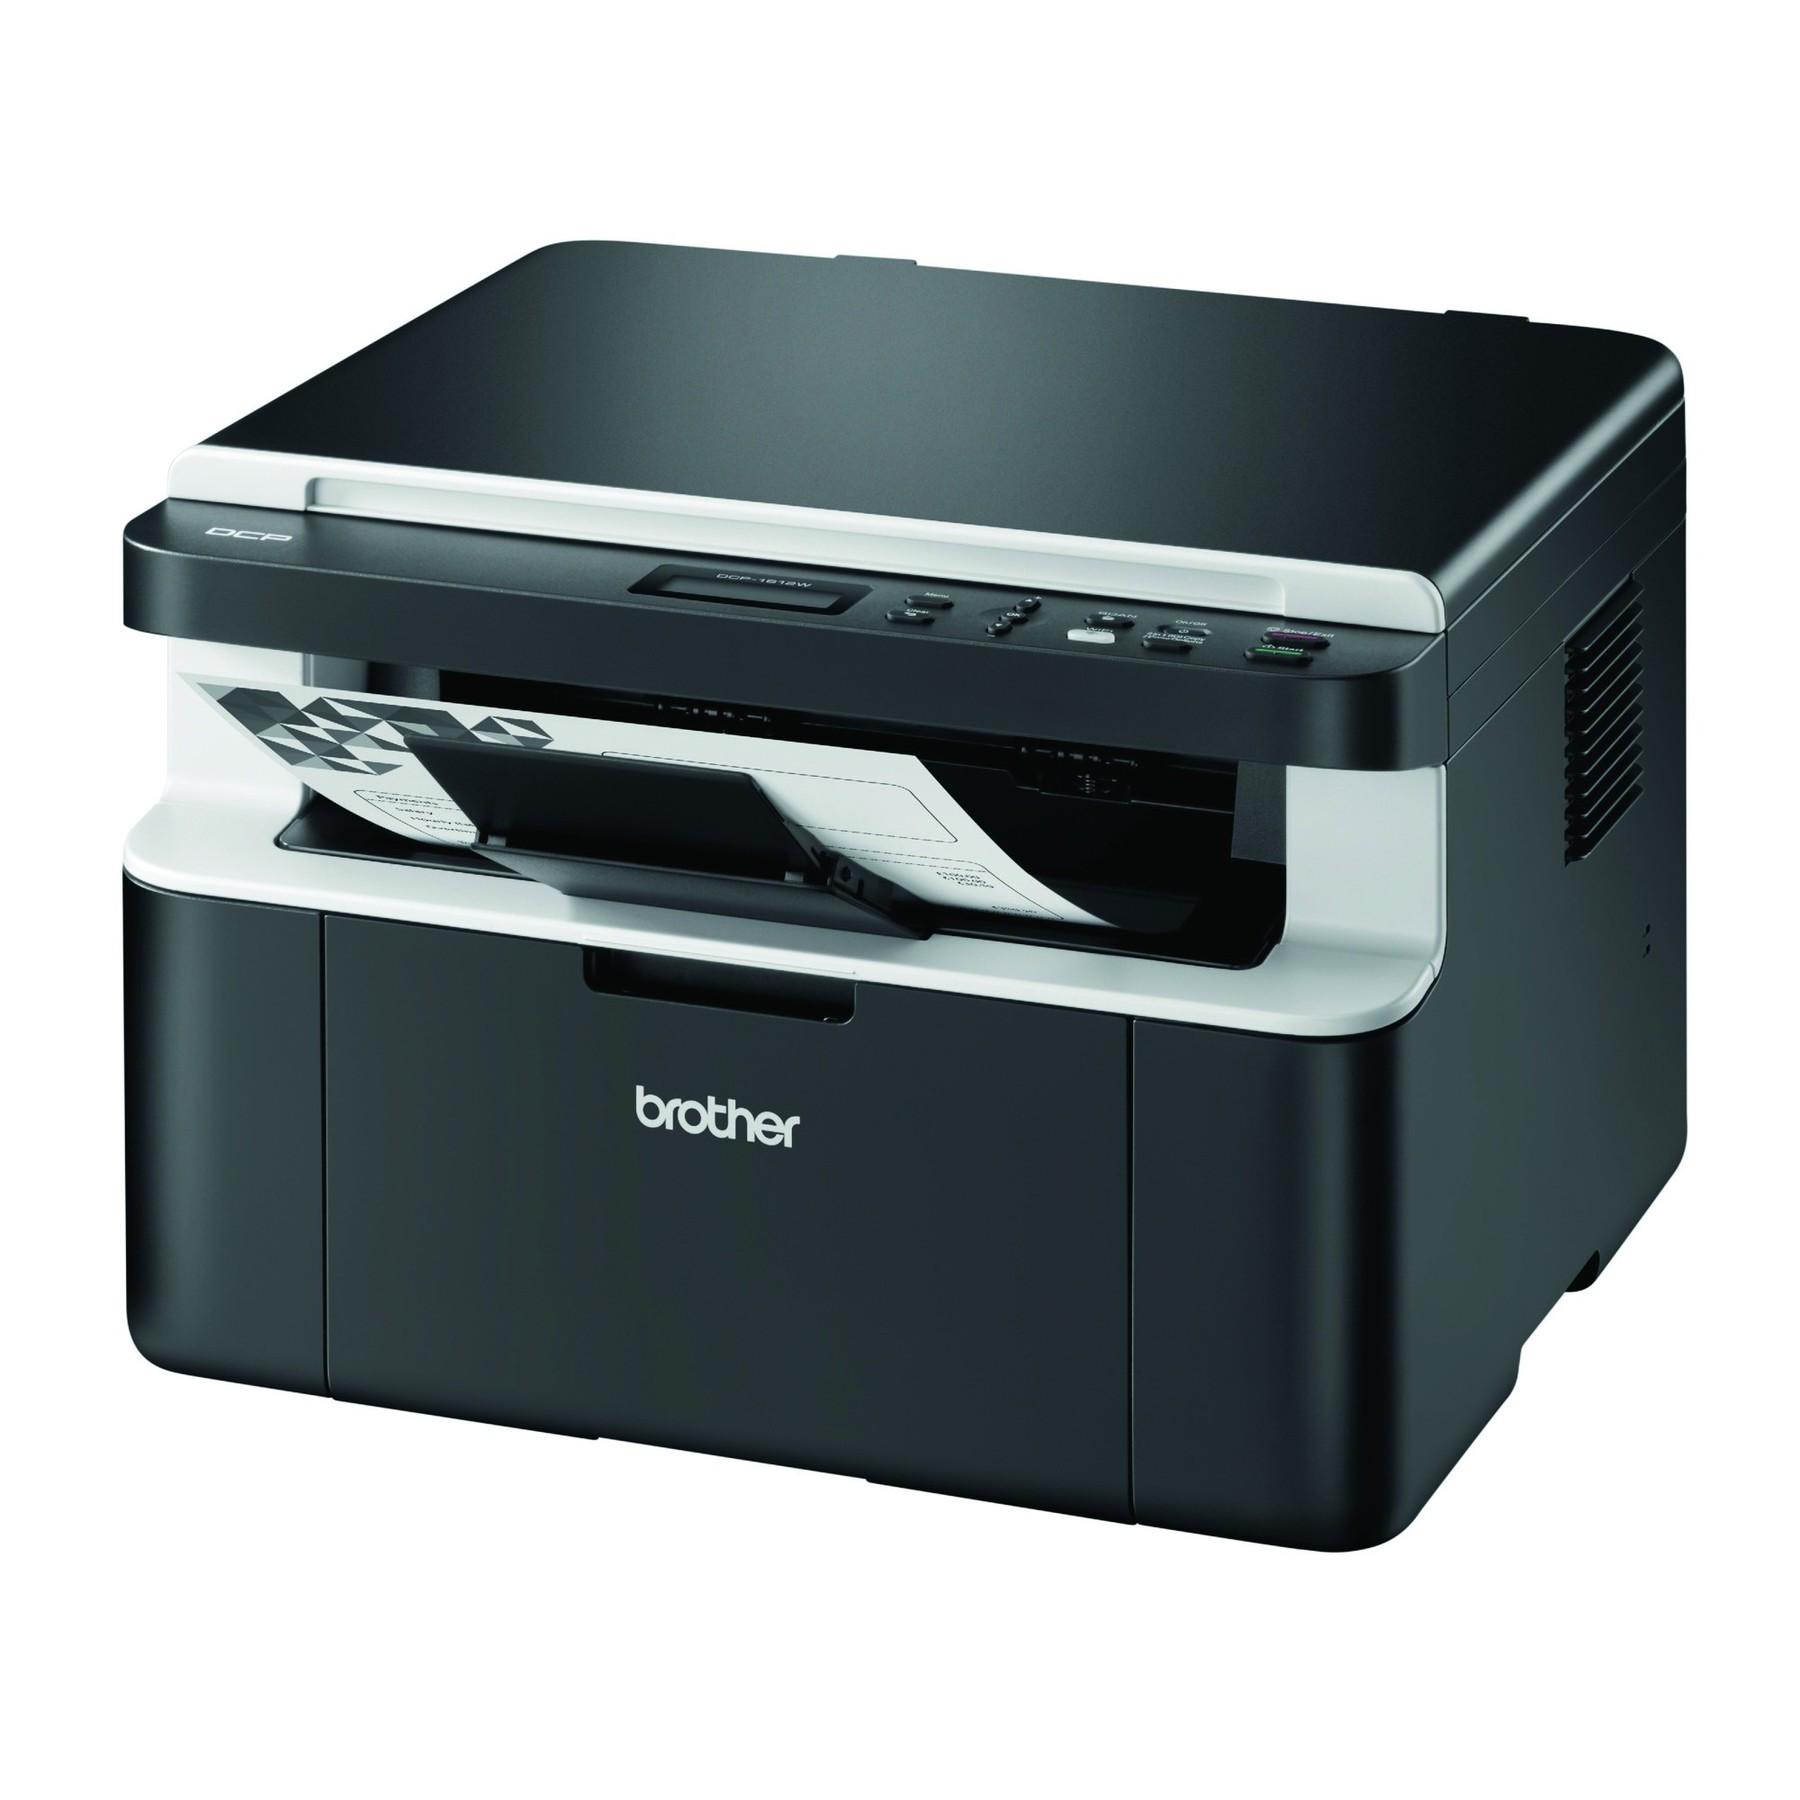 brother dcp 1612w 3 in 1 a4 mono laser wireless printer copy scan ebay. Black Bedroom Furniture Sets. Home Design Ideas